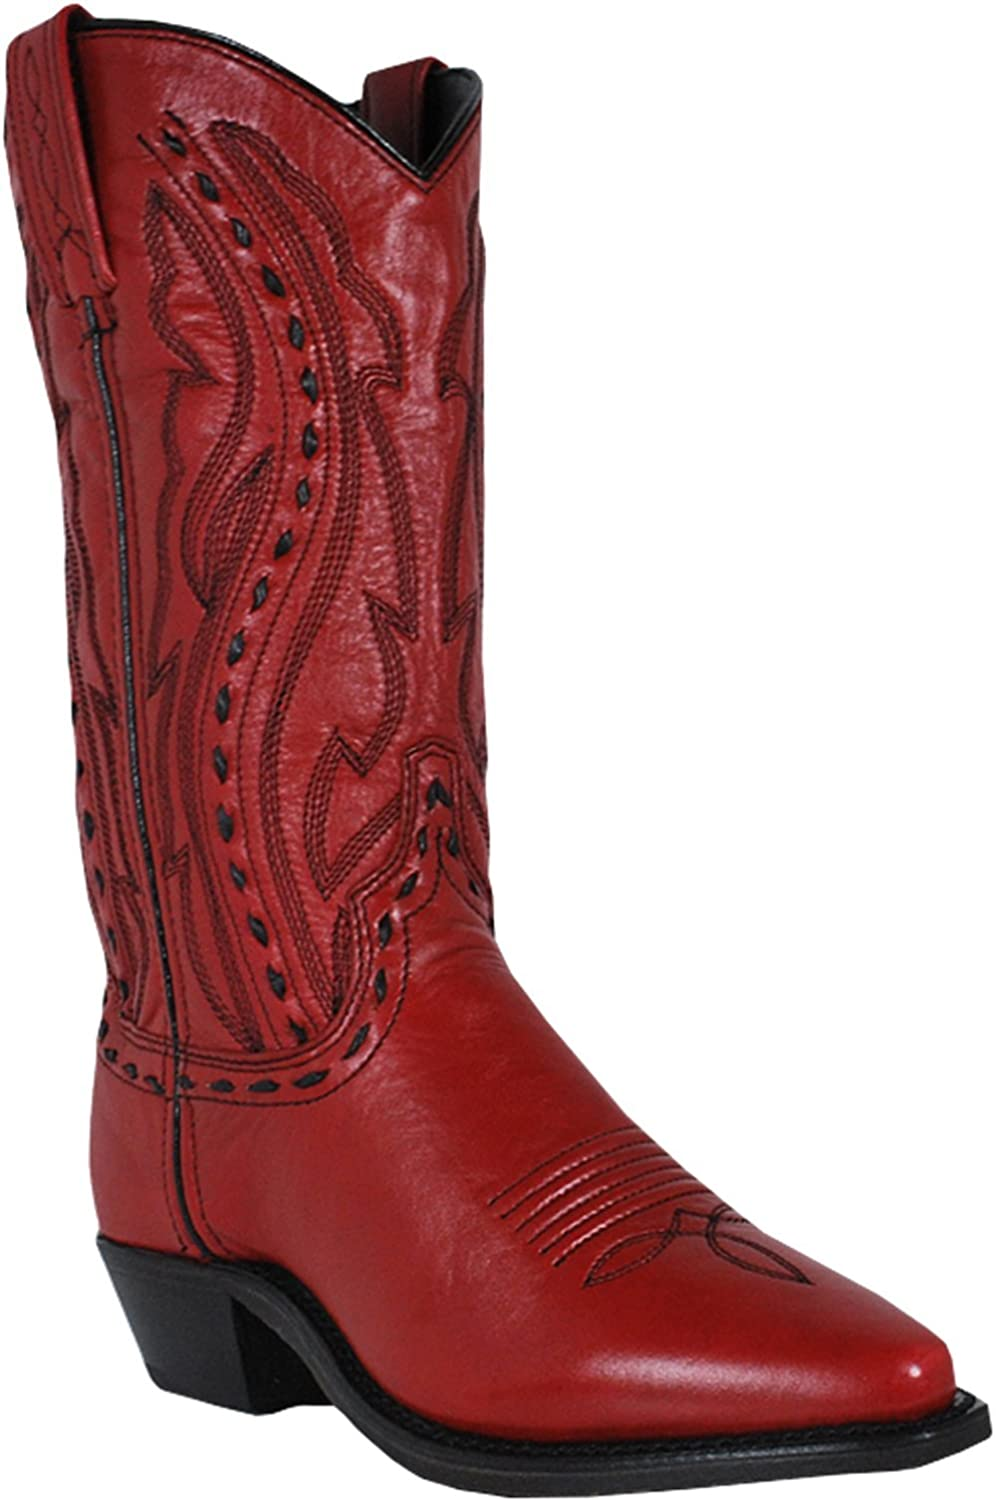 Abilene Women's Whipstitched Cowgirl Boot - 9002 B013K0VX0W 9.5 B(M) US|Red